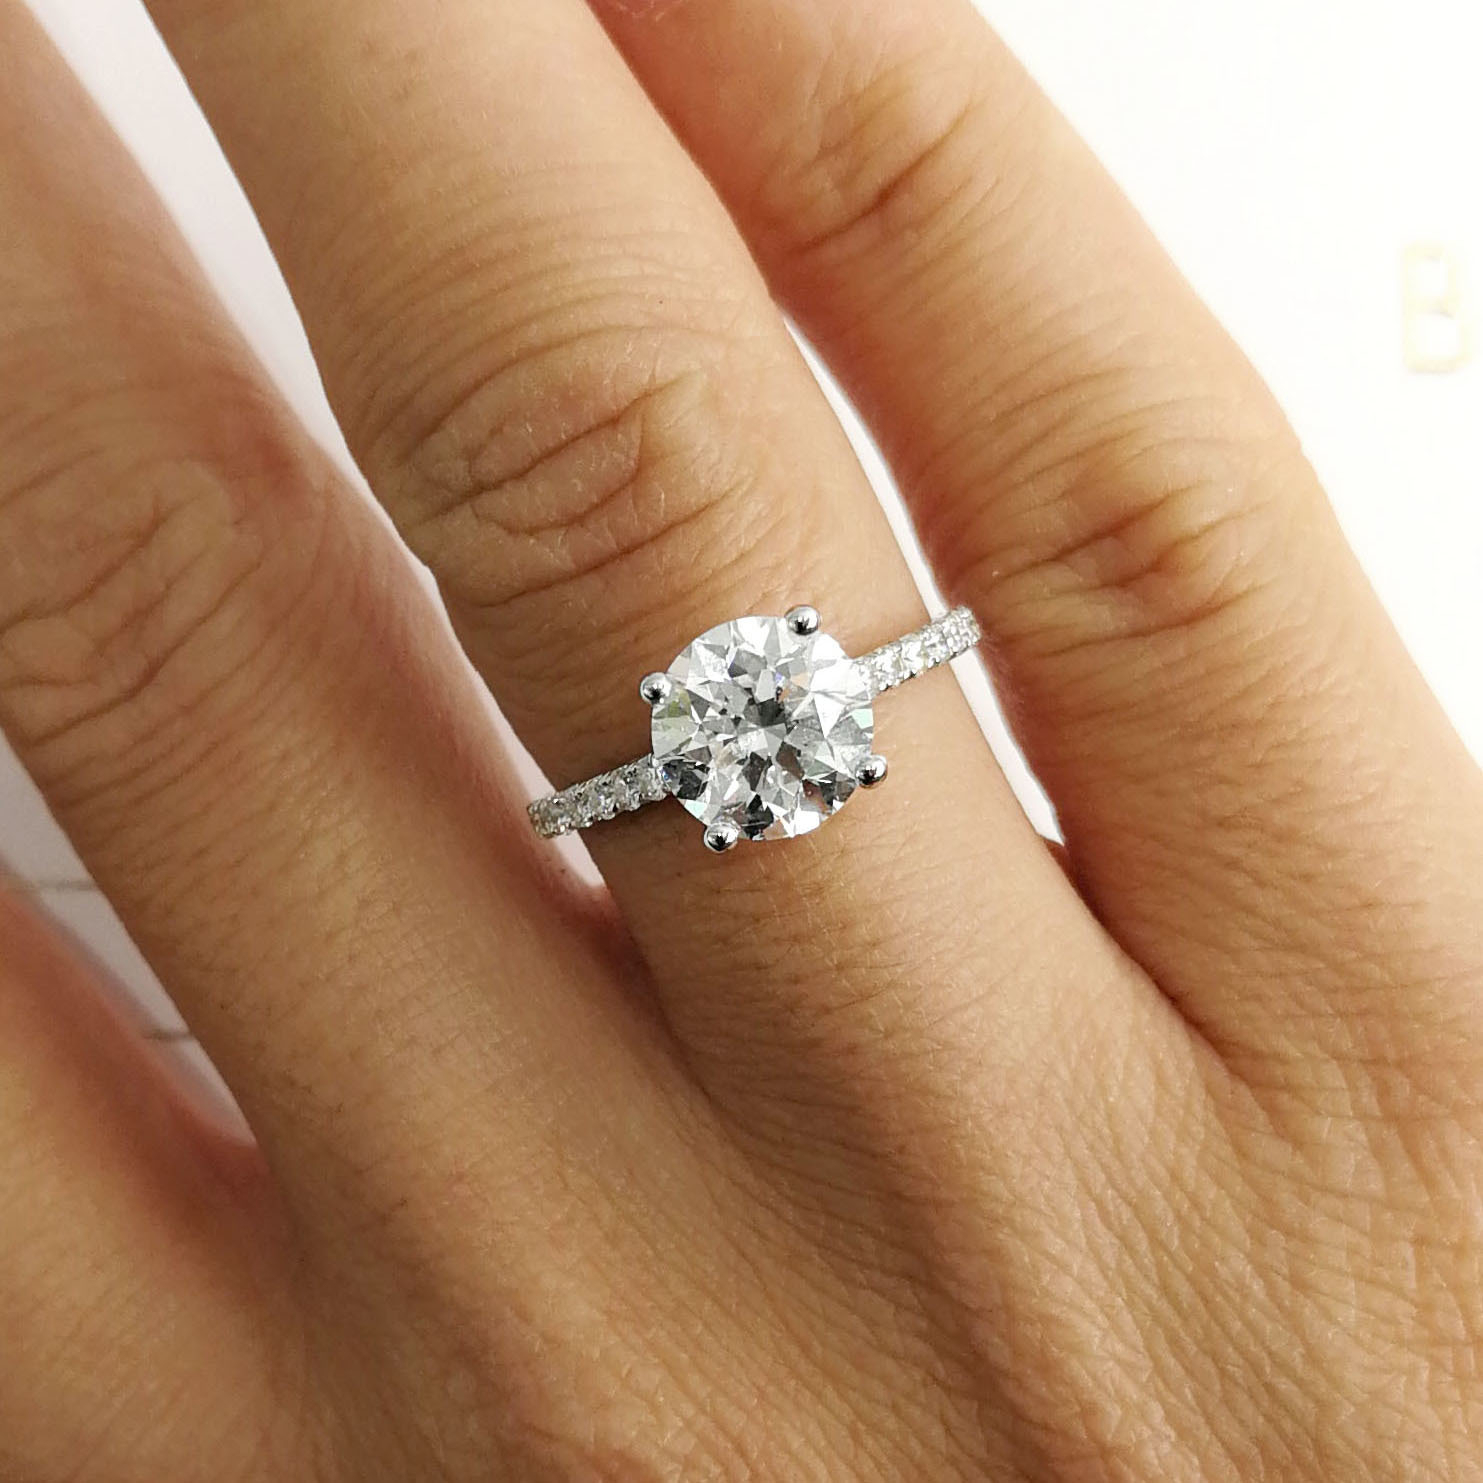 Details About 2 Carat Round Shape D – Vs2 Side Stone Diamond Gia Engagement  Ring Sizeable With Regard To Round Brilliant Engagement Rings With Pear Shaped Side Stones (View 7 of 25)